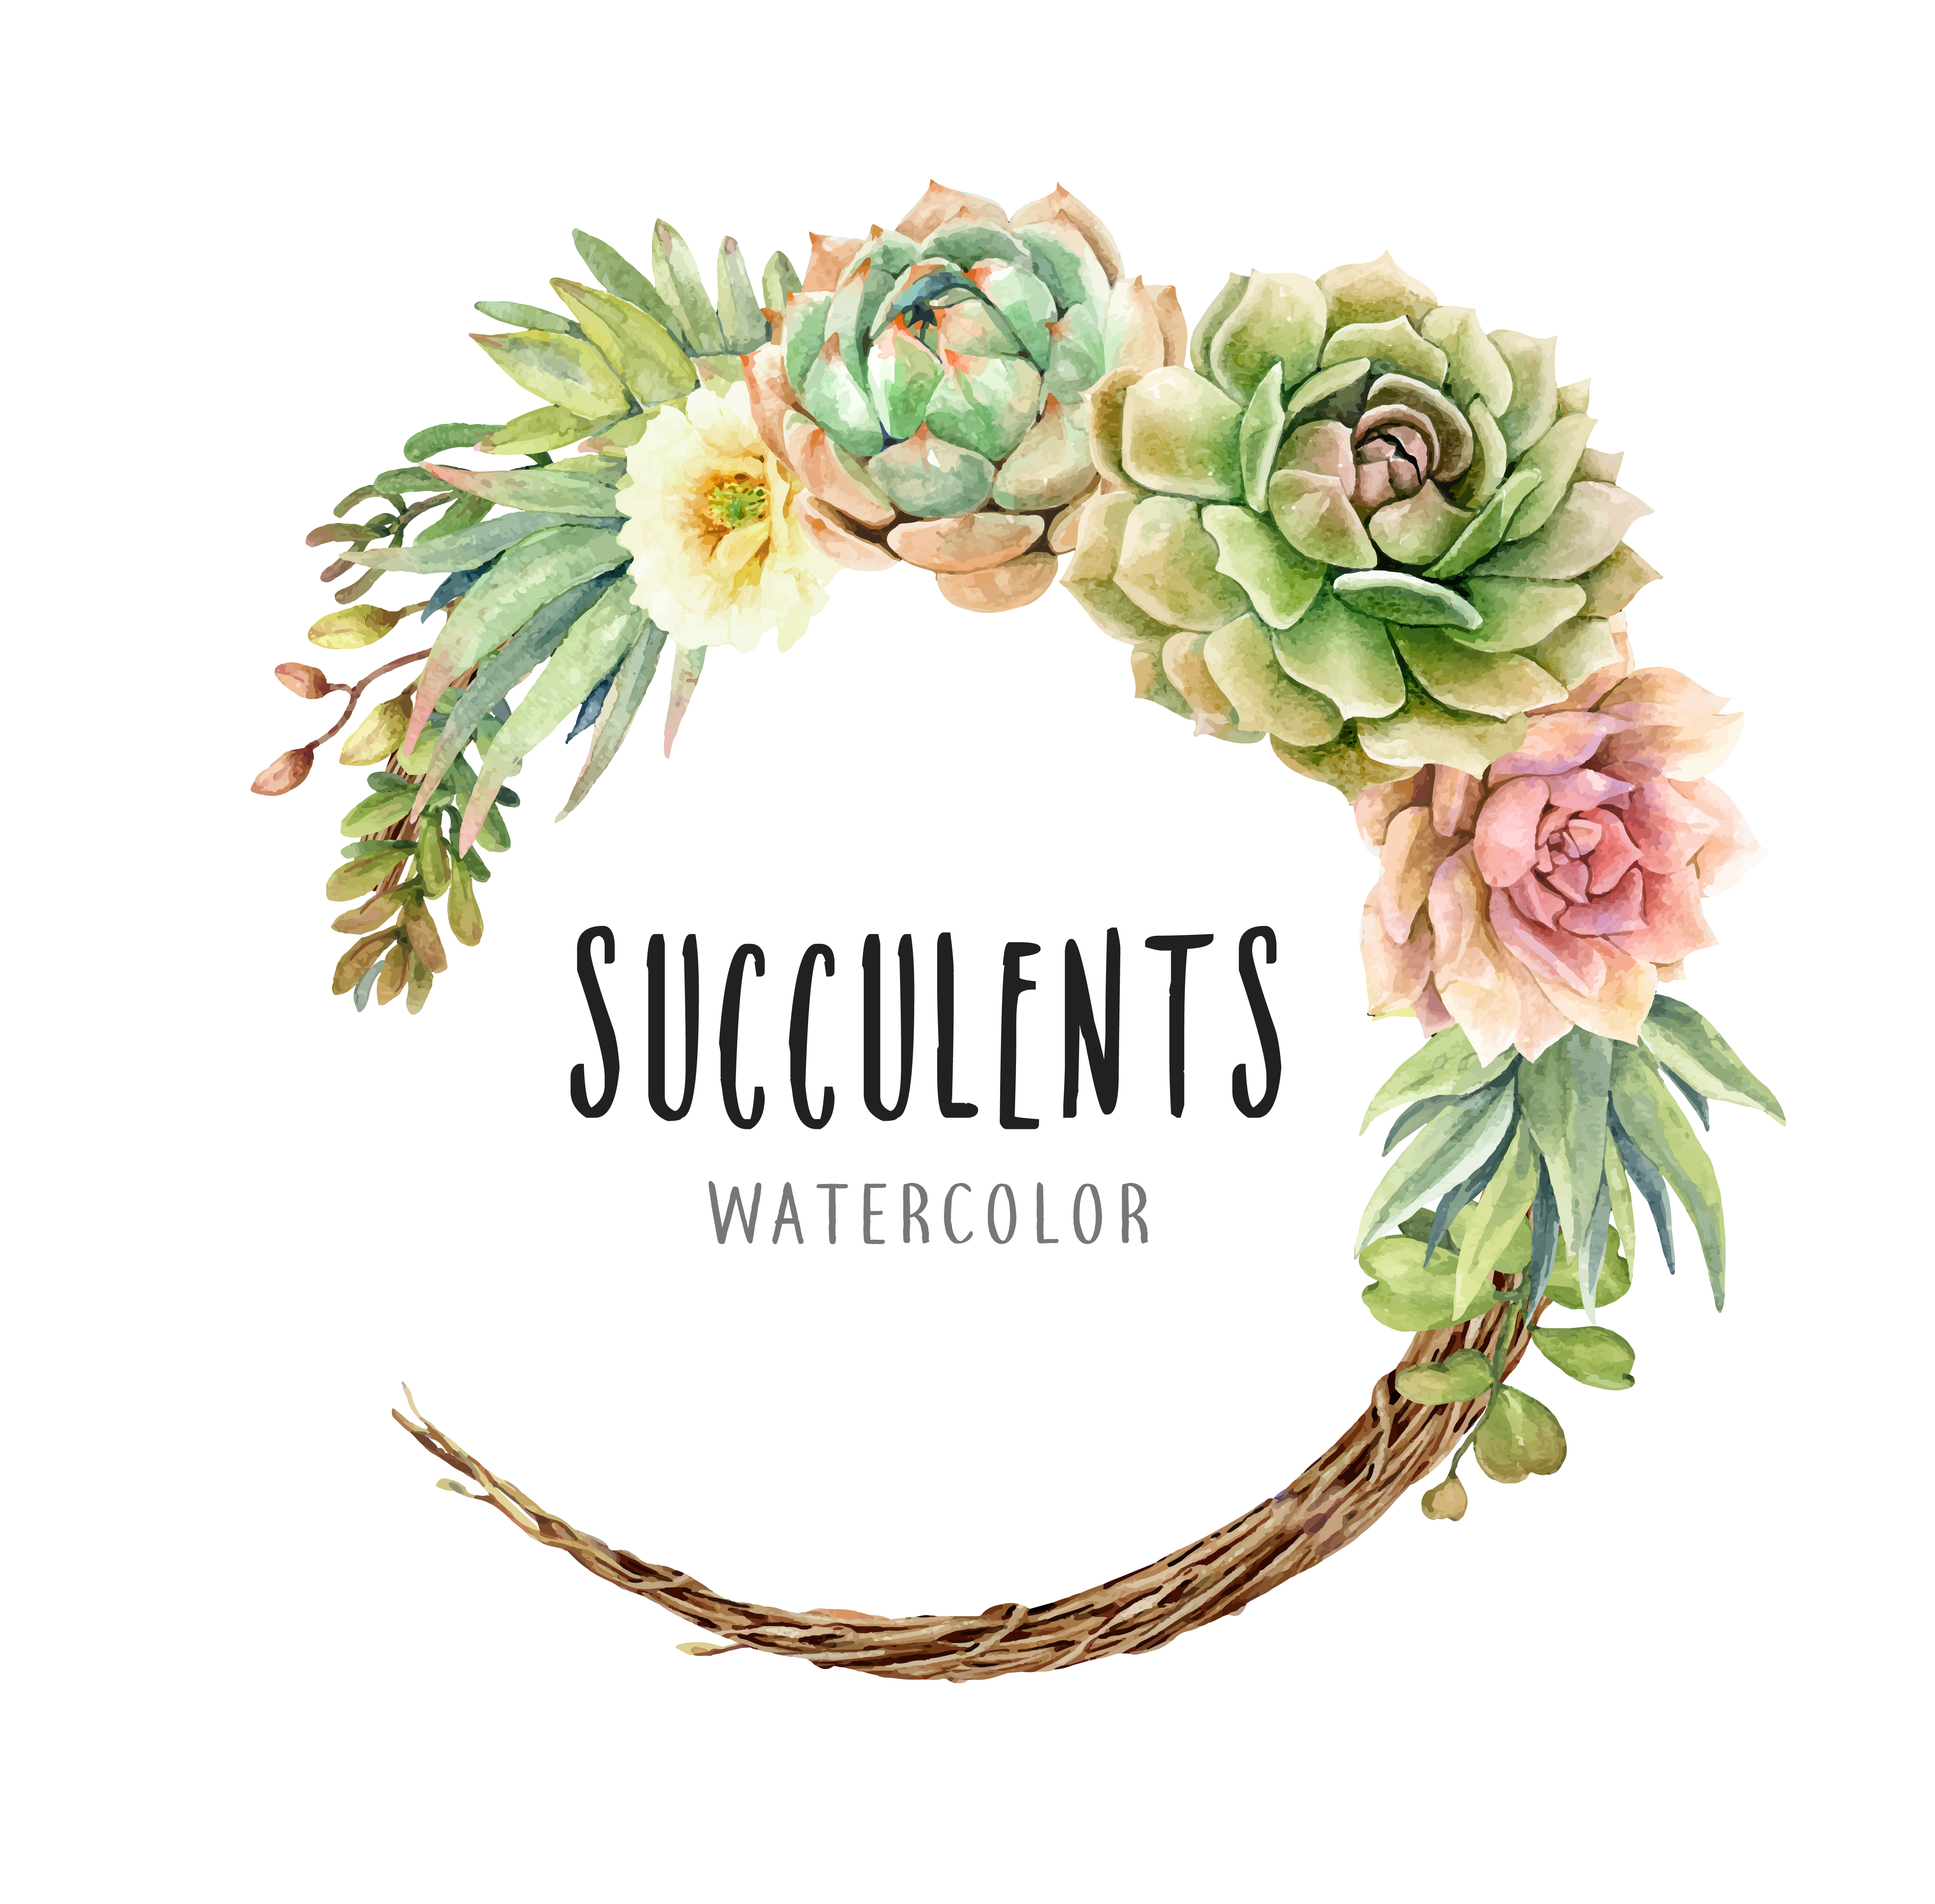 Floral Logos Collection: Watercolor Cactus Cacti And Succulents On Vine Wreath